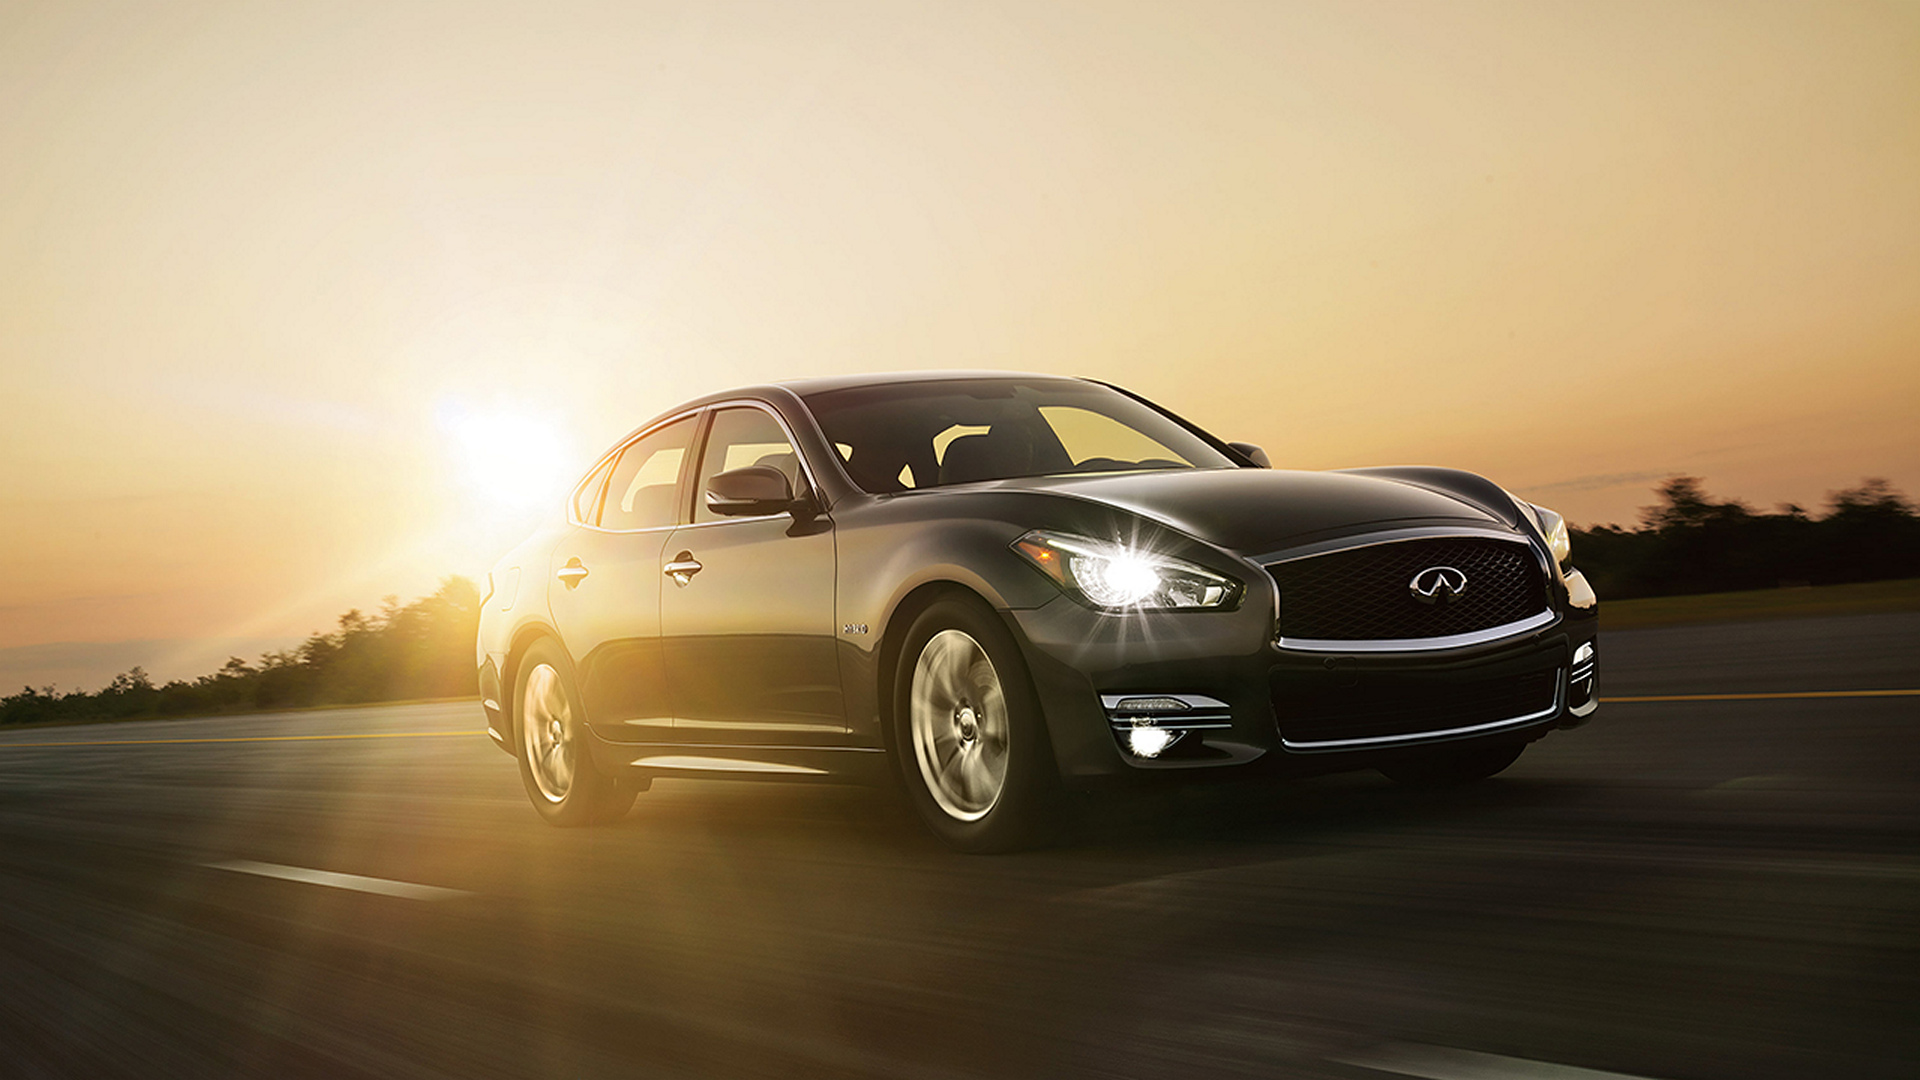 2016 infiniti q70 hybrid review carrrs auto portal. Black Bedroom Furniture Sets. Home Design Ideas